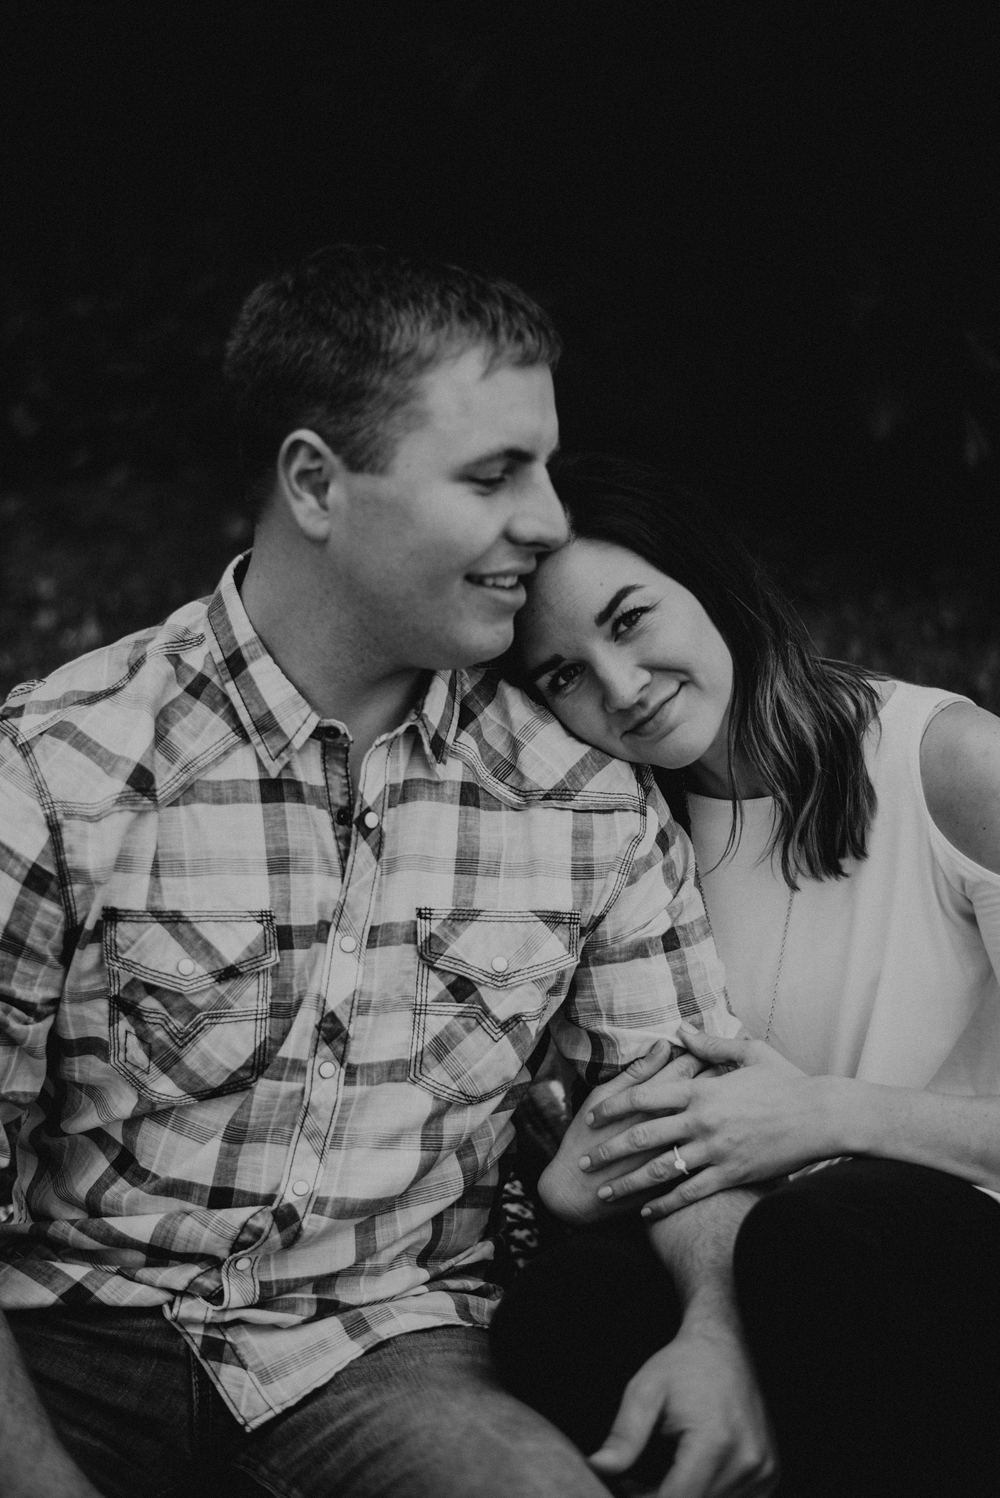 kaylie-sirek-nebraska-wedding-engagement-photographer-photography-grand-island-kearney-hastings-lincoln-54.png